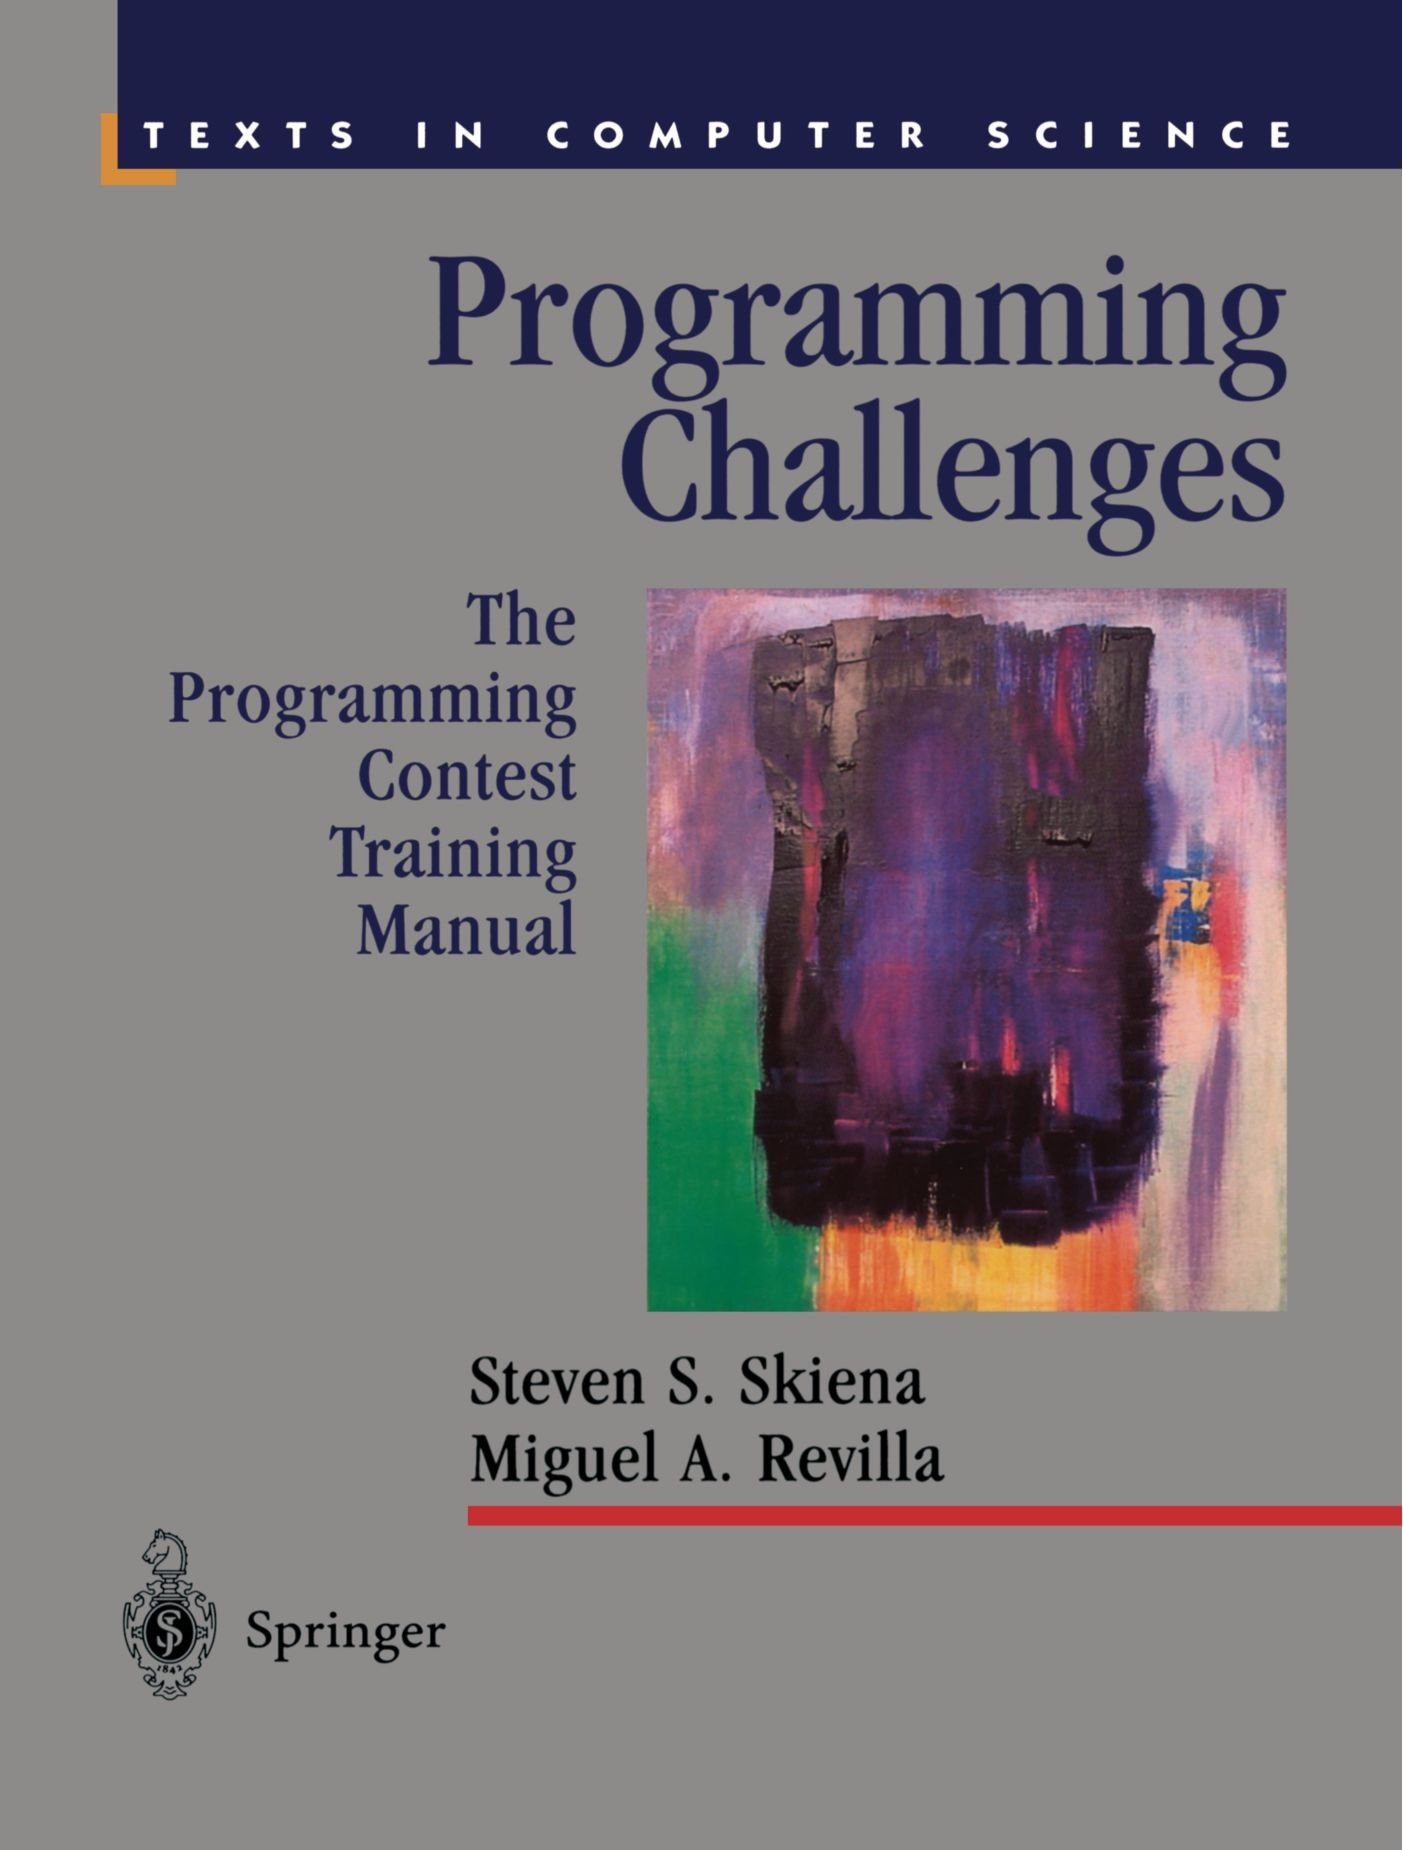 Programming Challenges: The Programming Contest Training Manual (Texts in Computer Science) by Springer